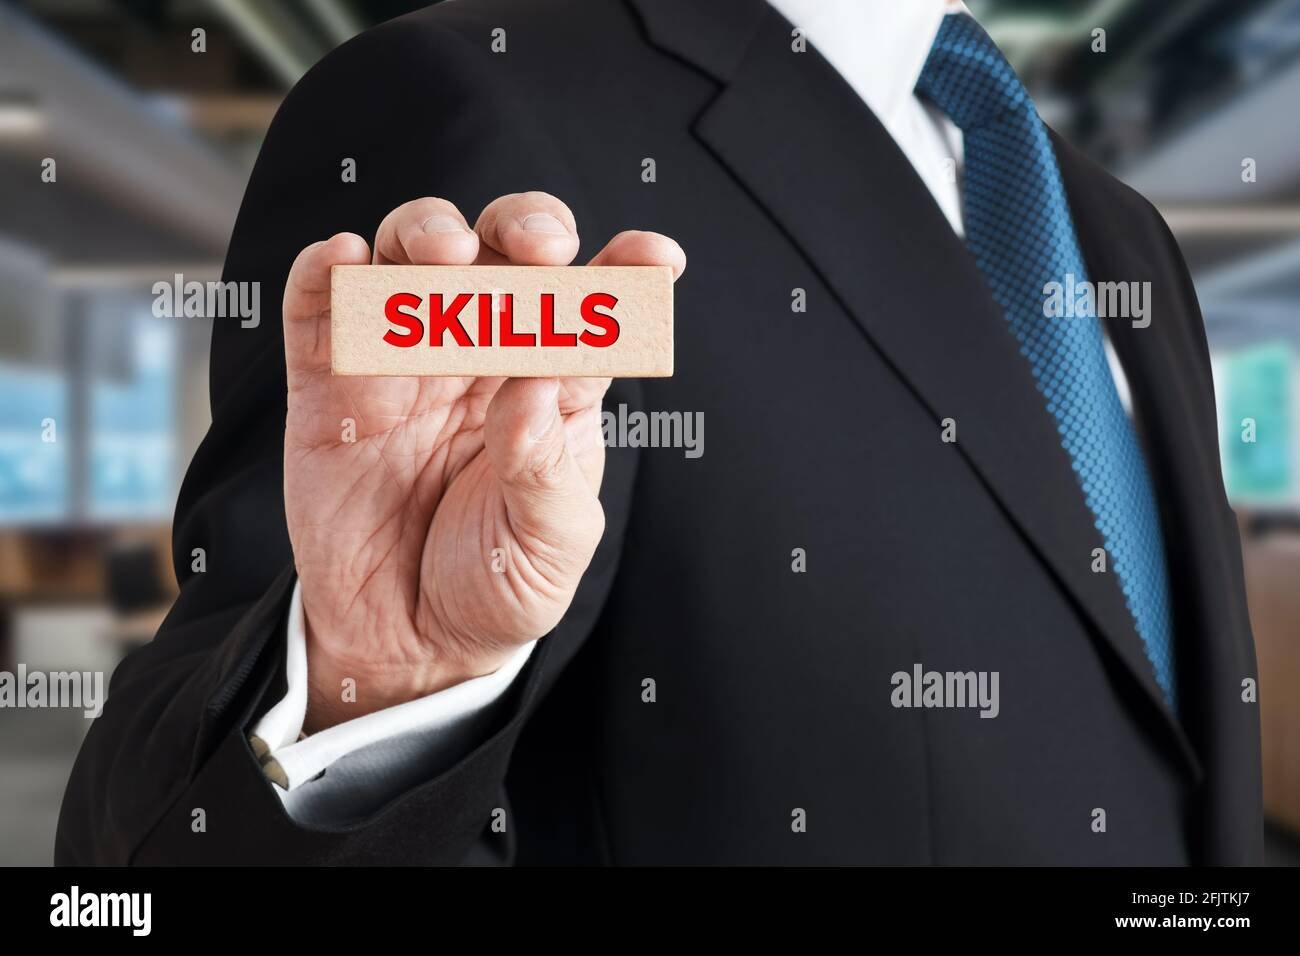 Businessman shows a wooden block with the word skills. Business or job qualification, competence or leadership skills concept. Stock Photo